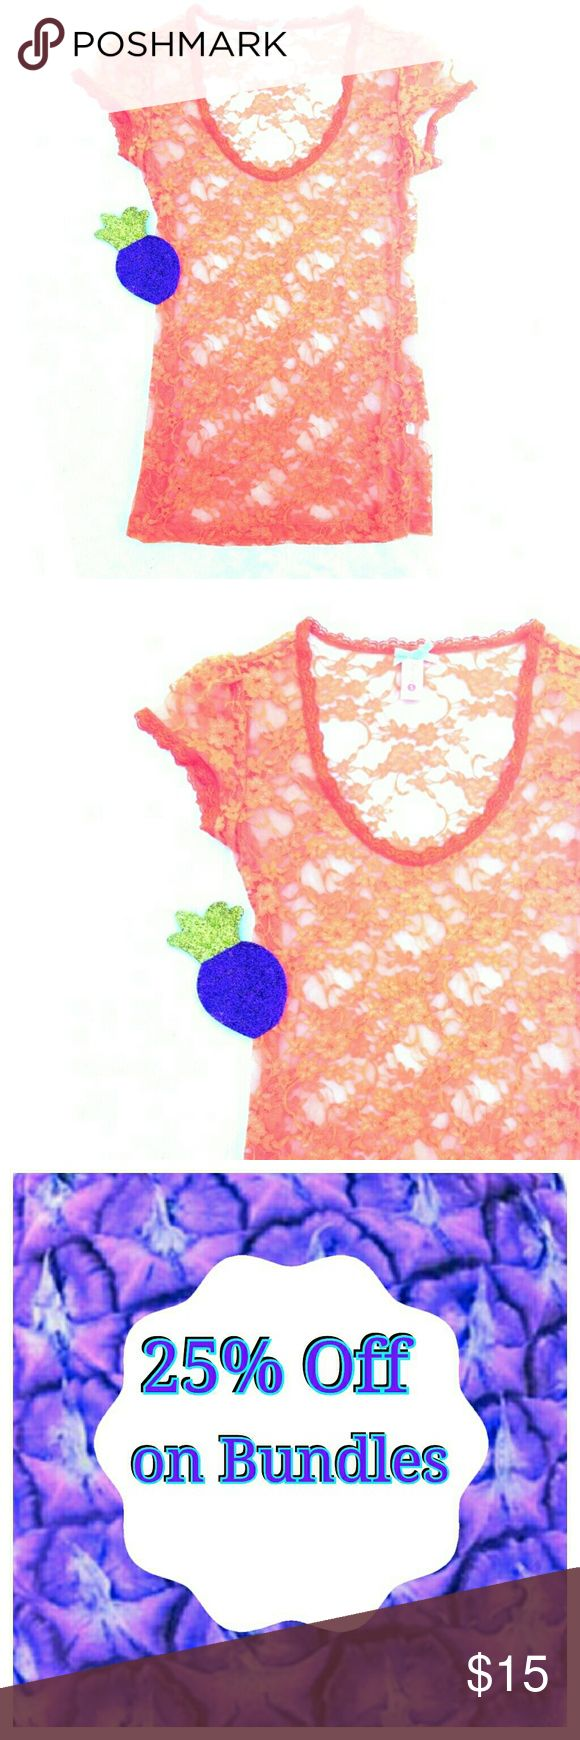 🍍 Orange Lace Top Shirt Size Small Sheer Cover Up Love this shirt it is such a nice bright orange disappointed it doesn't fit me. It's a gorgeous shirt purchased it for myself but cannot wear it so I would consider it new without the tags there's a fine line between that  🤔it has been tried on but not worn anywhere😉😊   Would look nice over a spaghetti strap tank or a bikini top I do bundle ladies 25% off on bundles  Inventory #87 Tops Blouses